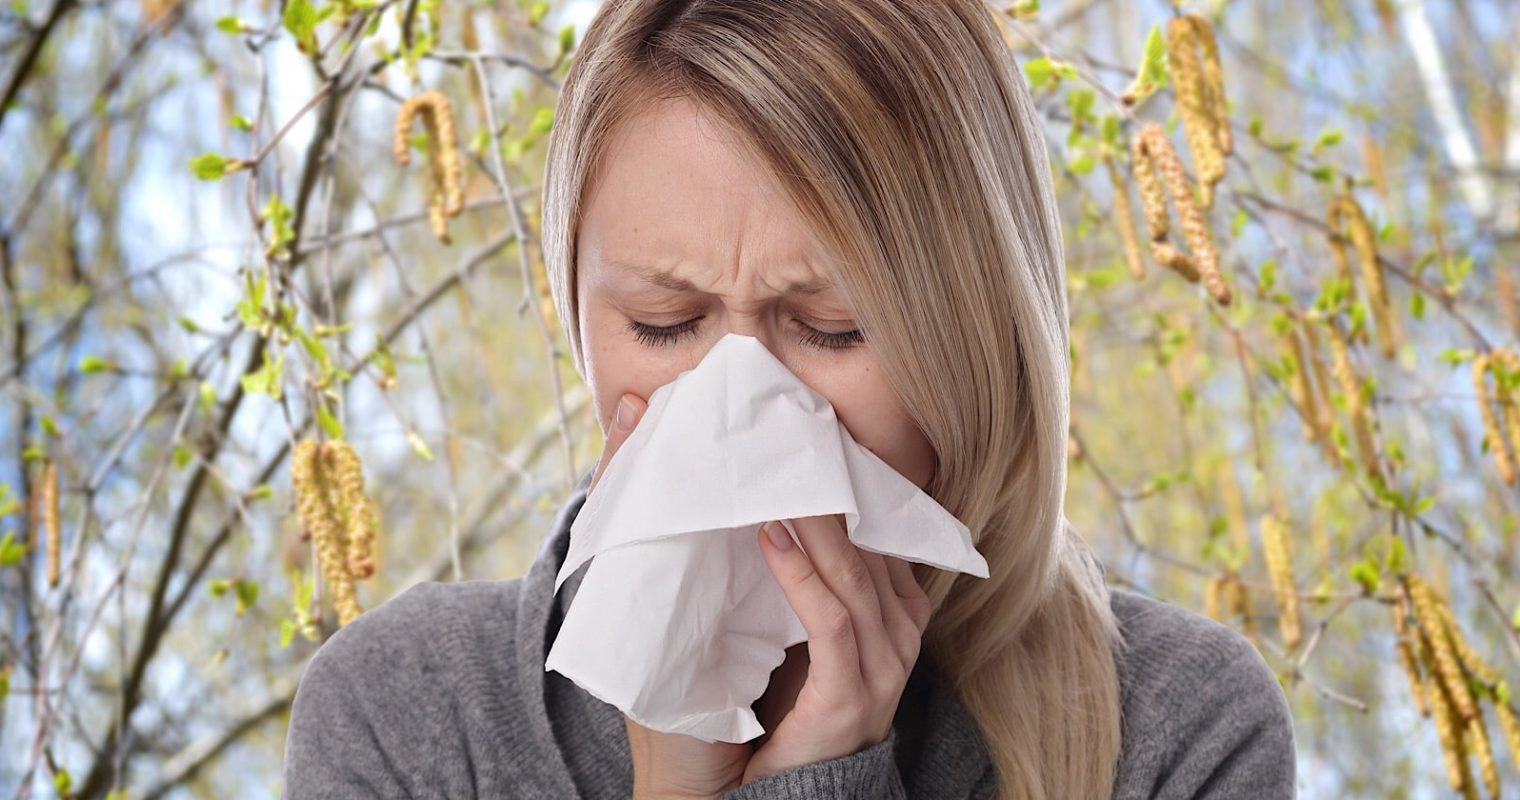 Google Search is Looking Out for People with Pollen Allergies